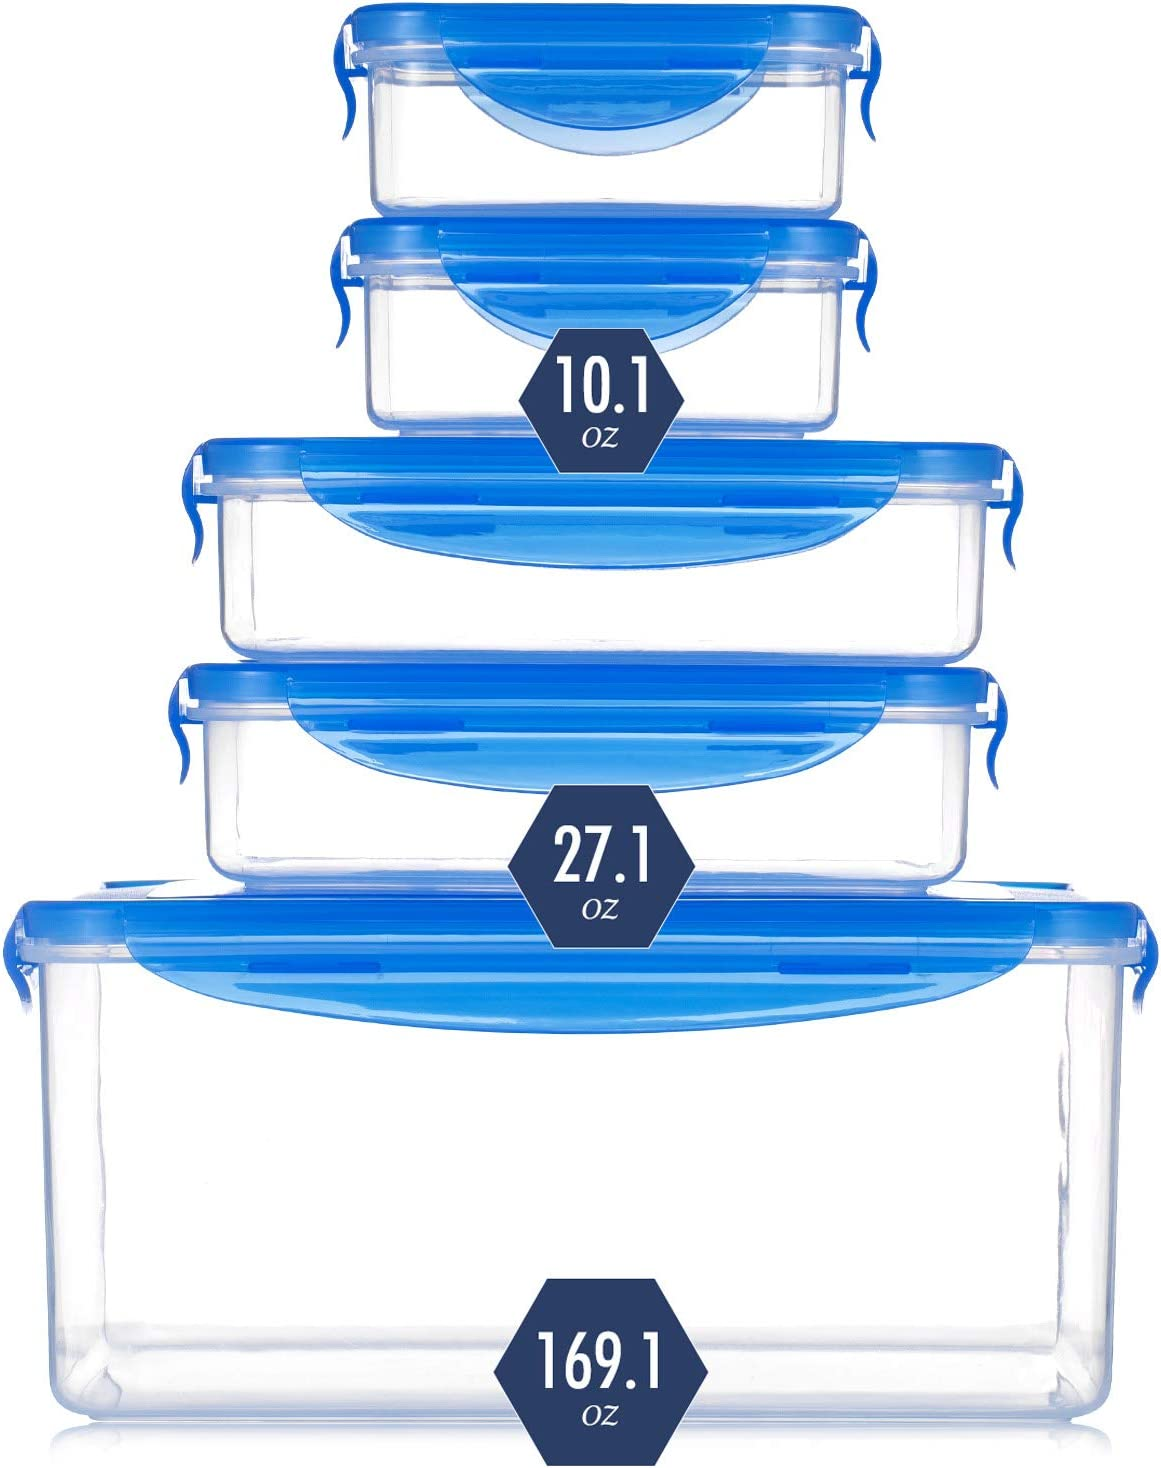 Kaldmeiya Food Storage Container with Lid, Plastic Container, Food Storage Container Set, Sealed Leak-Proof Food Container, Fruit Snack Plastic Storage Container, 5 Pieces, Clear